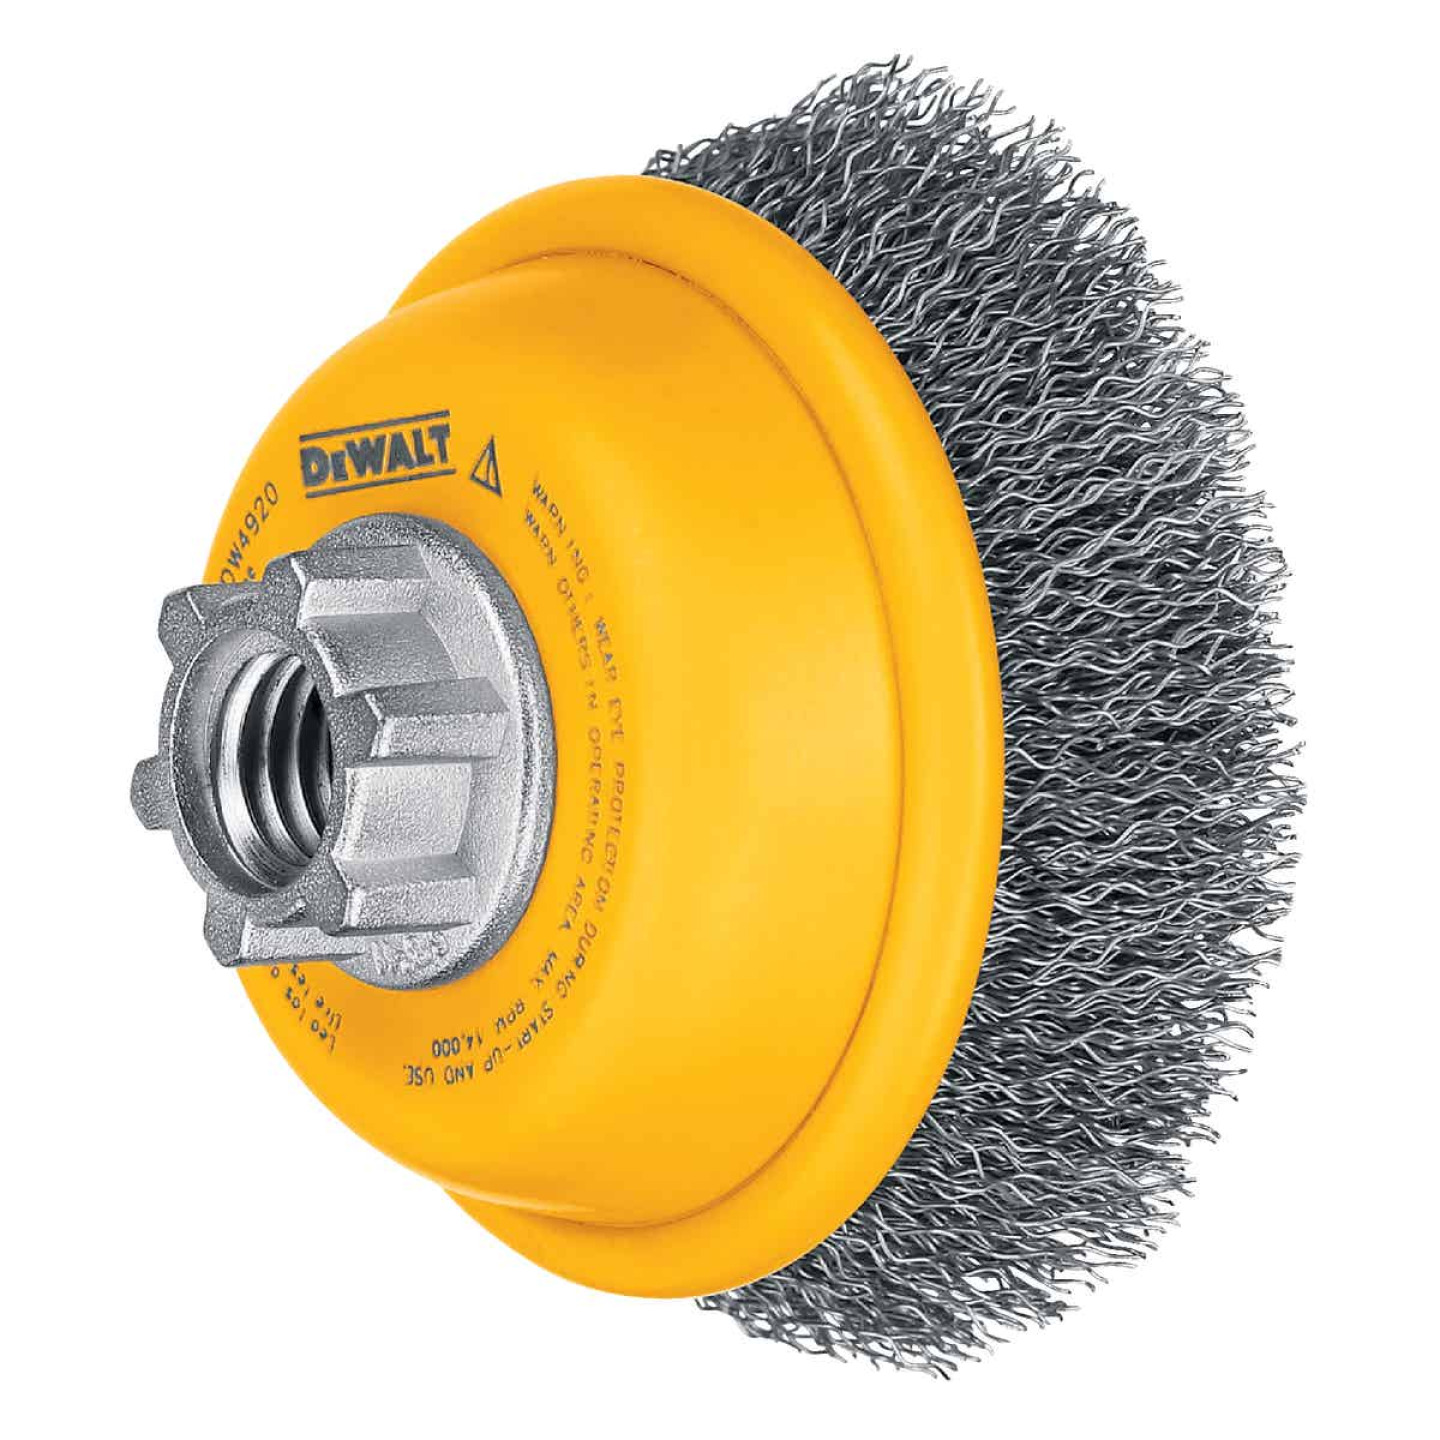 DeWalt 3 In. Crimped 0.014 In. Angle Grinder Wire Brush Image 1